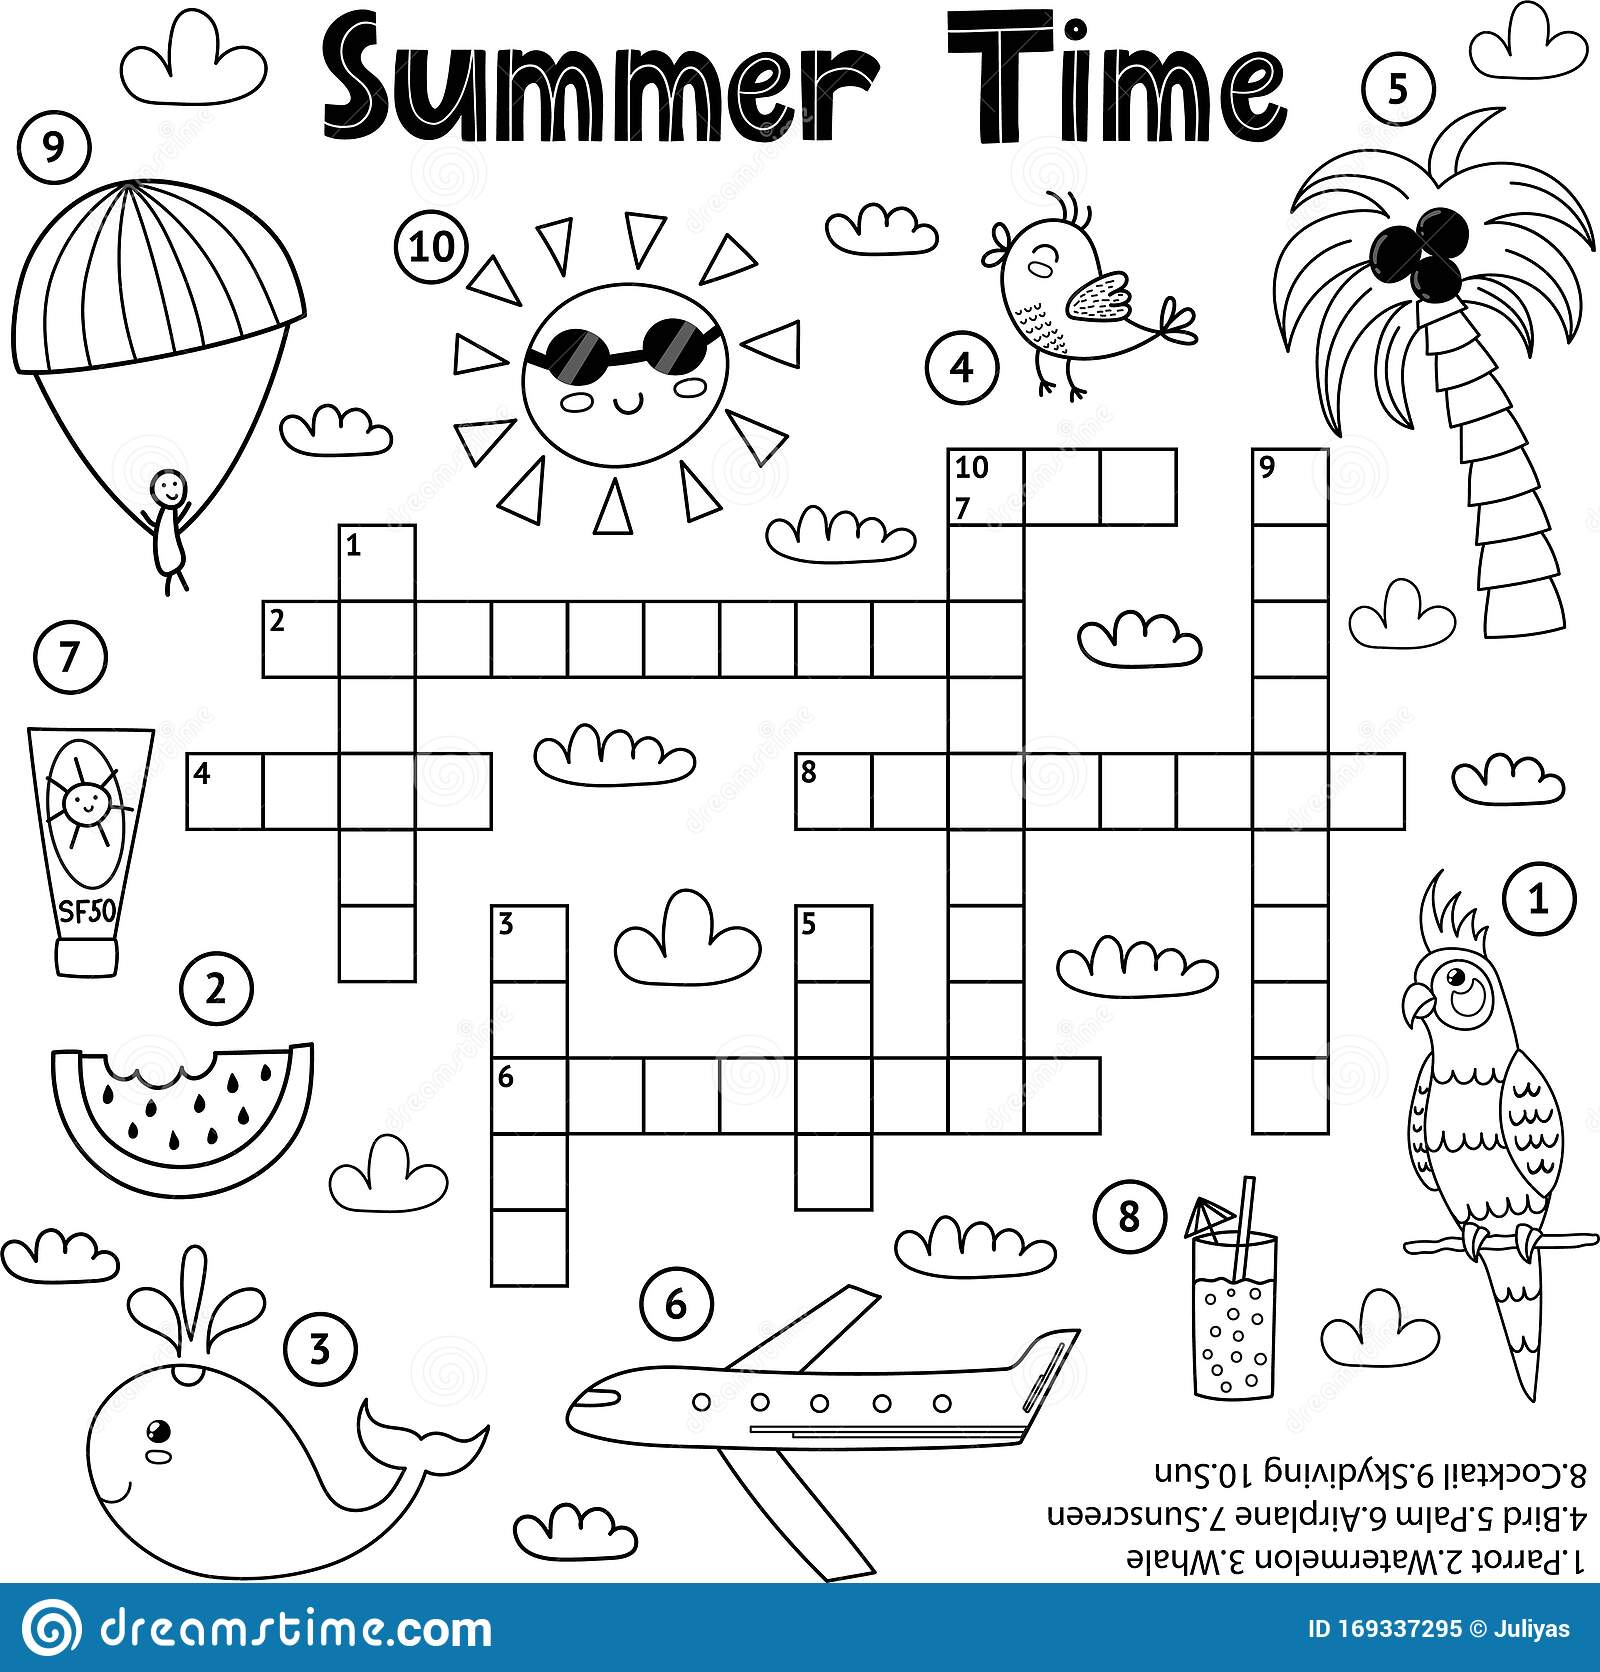 Summer Time Black And White Crossword Game Stock Vector